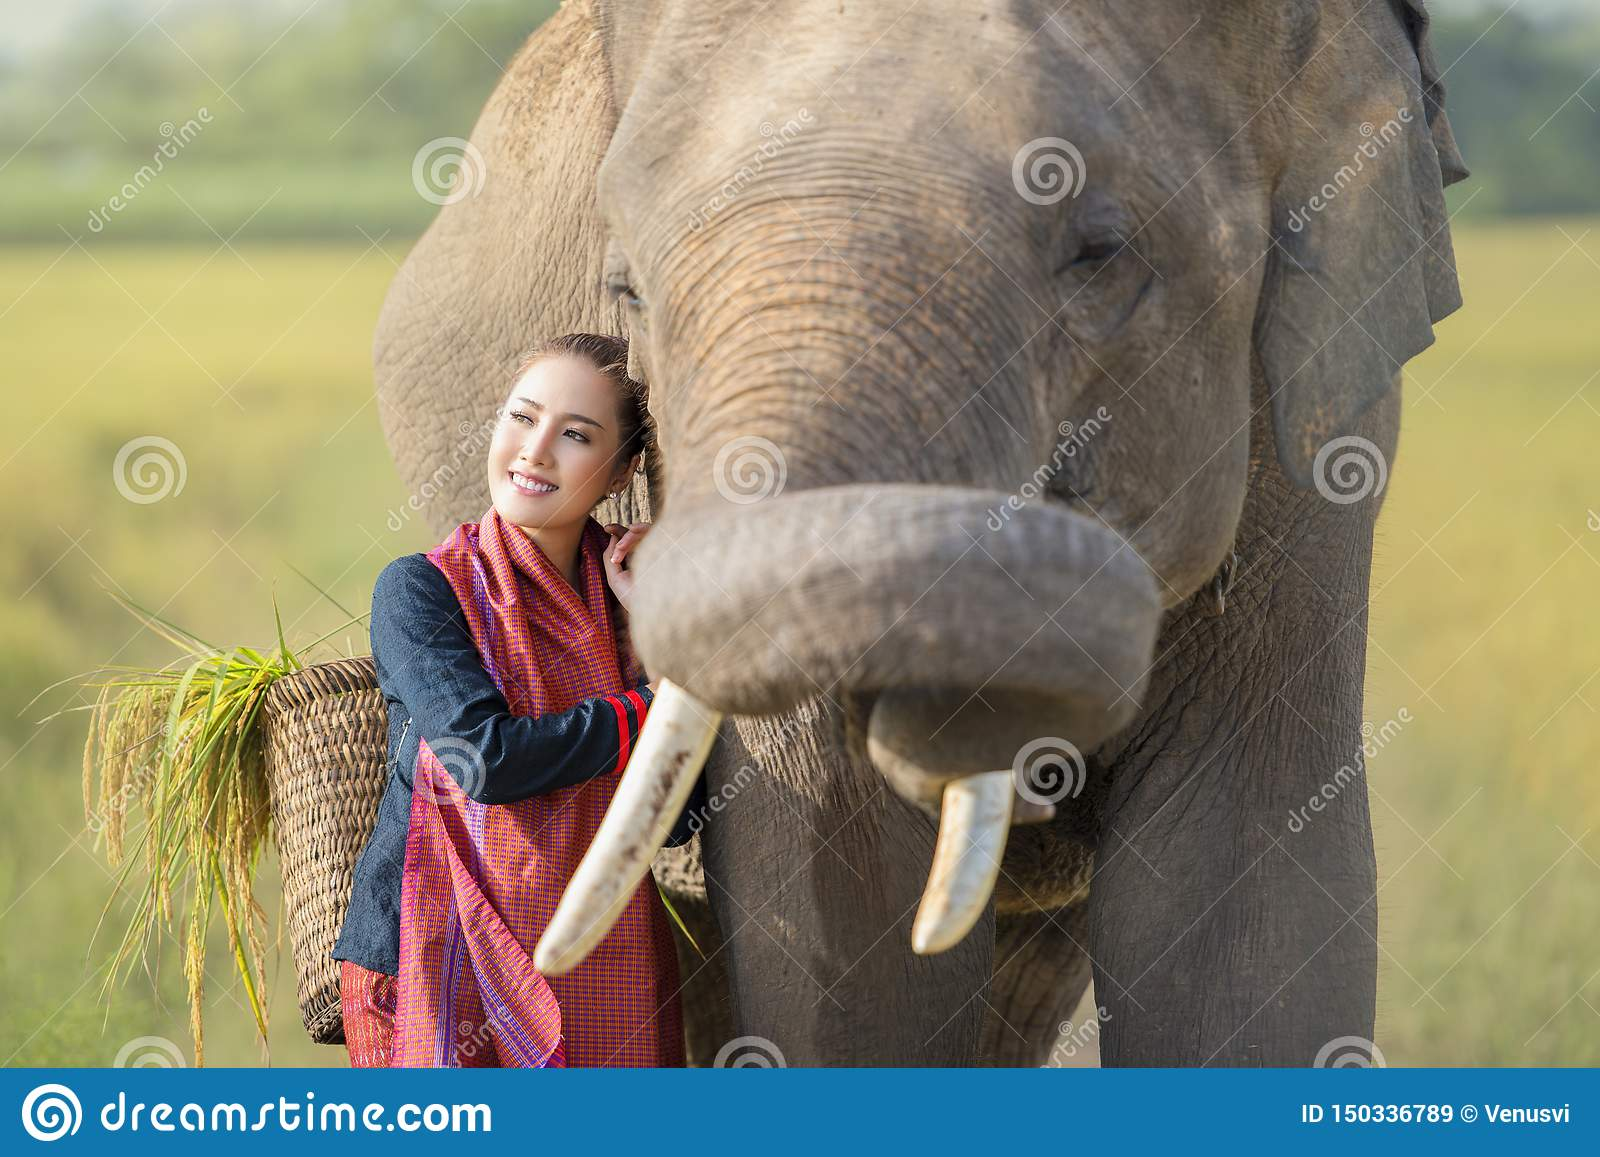 Love, bonding of people and elephants